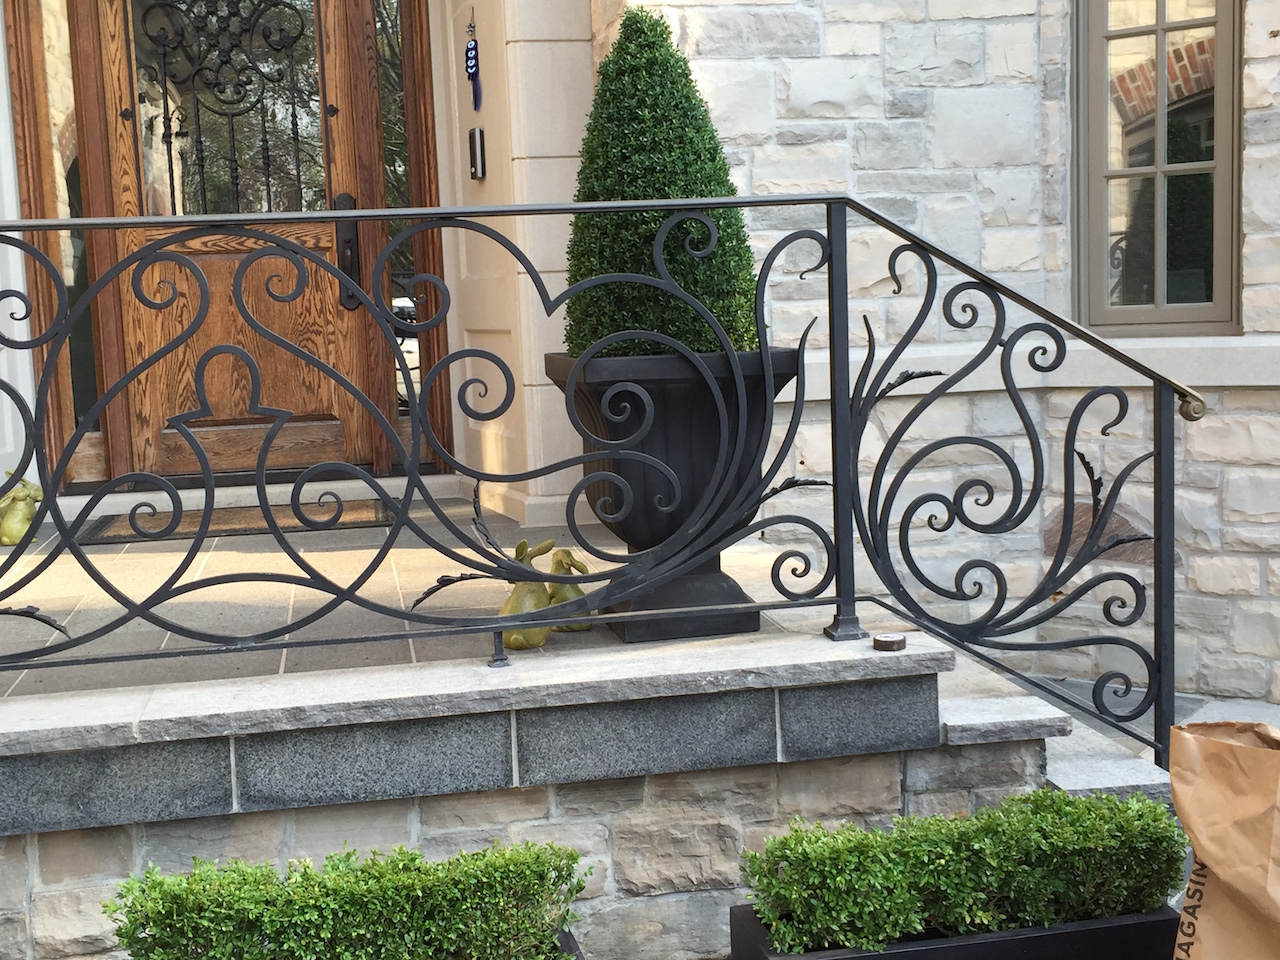 GALLERY   EXTERIOR   Wrought Iron Railings – Innovative Metal Works